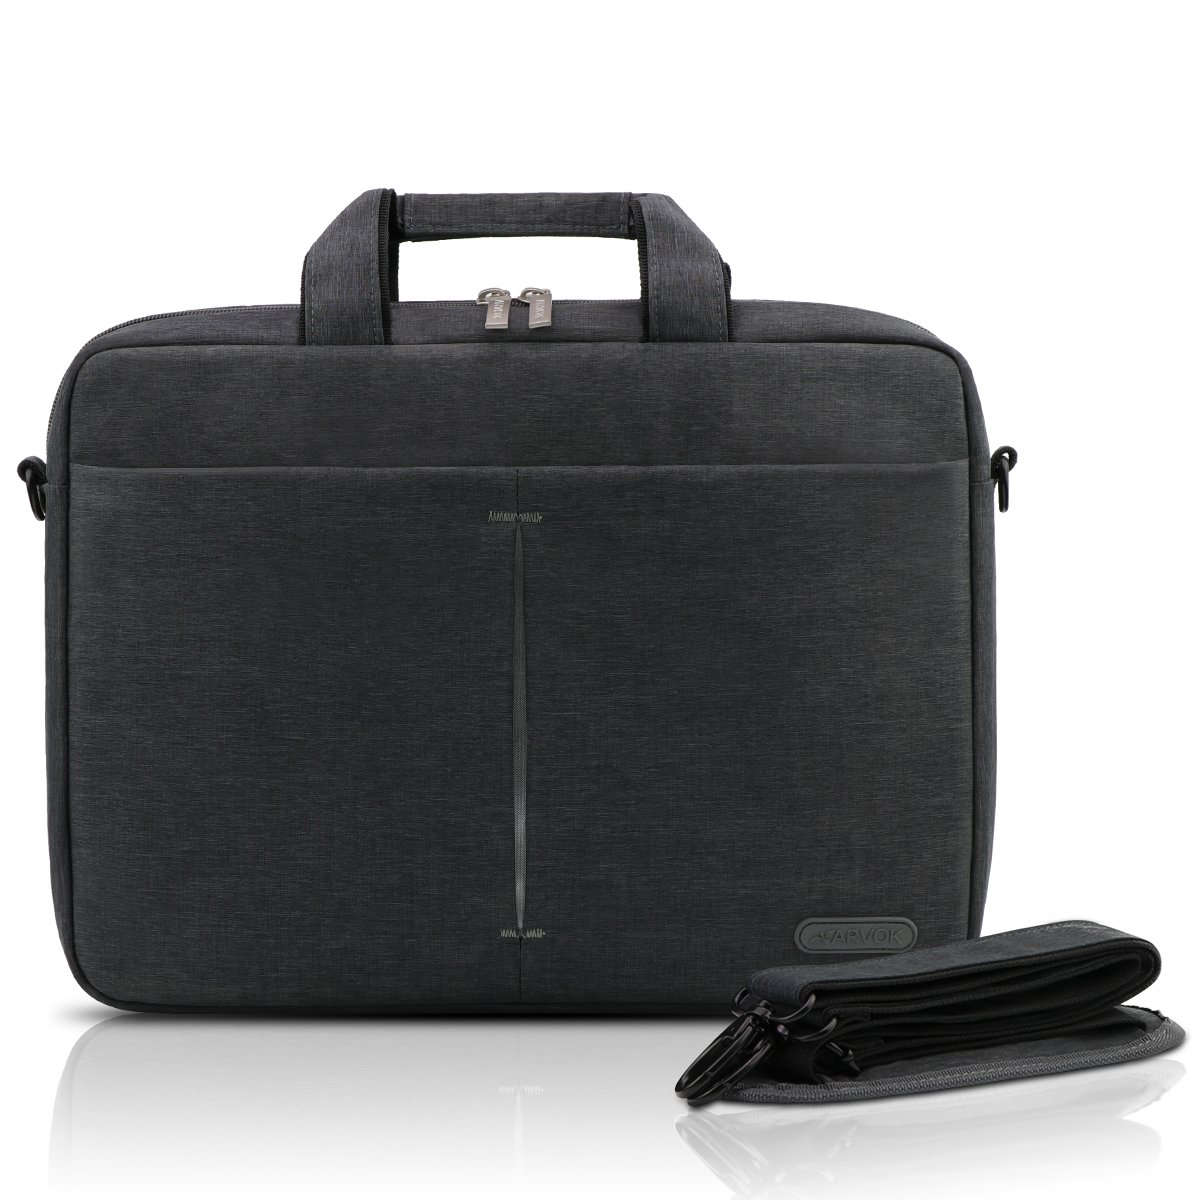 Arvok 15-16 Inch Laptop Bag Multifunctional Briefcase Water-Resistant Sleek Fabric with Handle and Shoulder Strap/Notebook Messenger Carrying Case